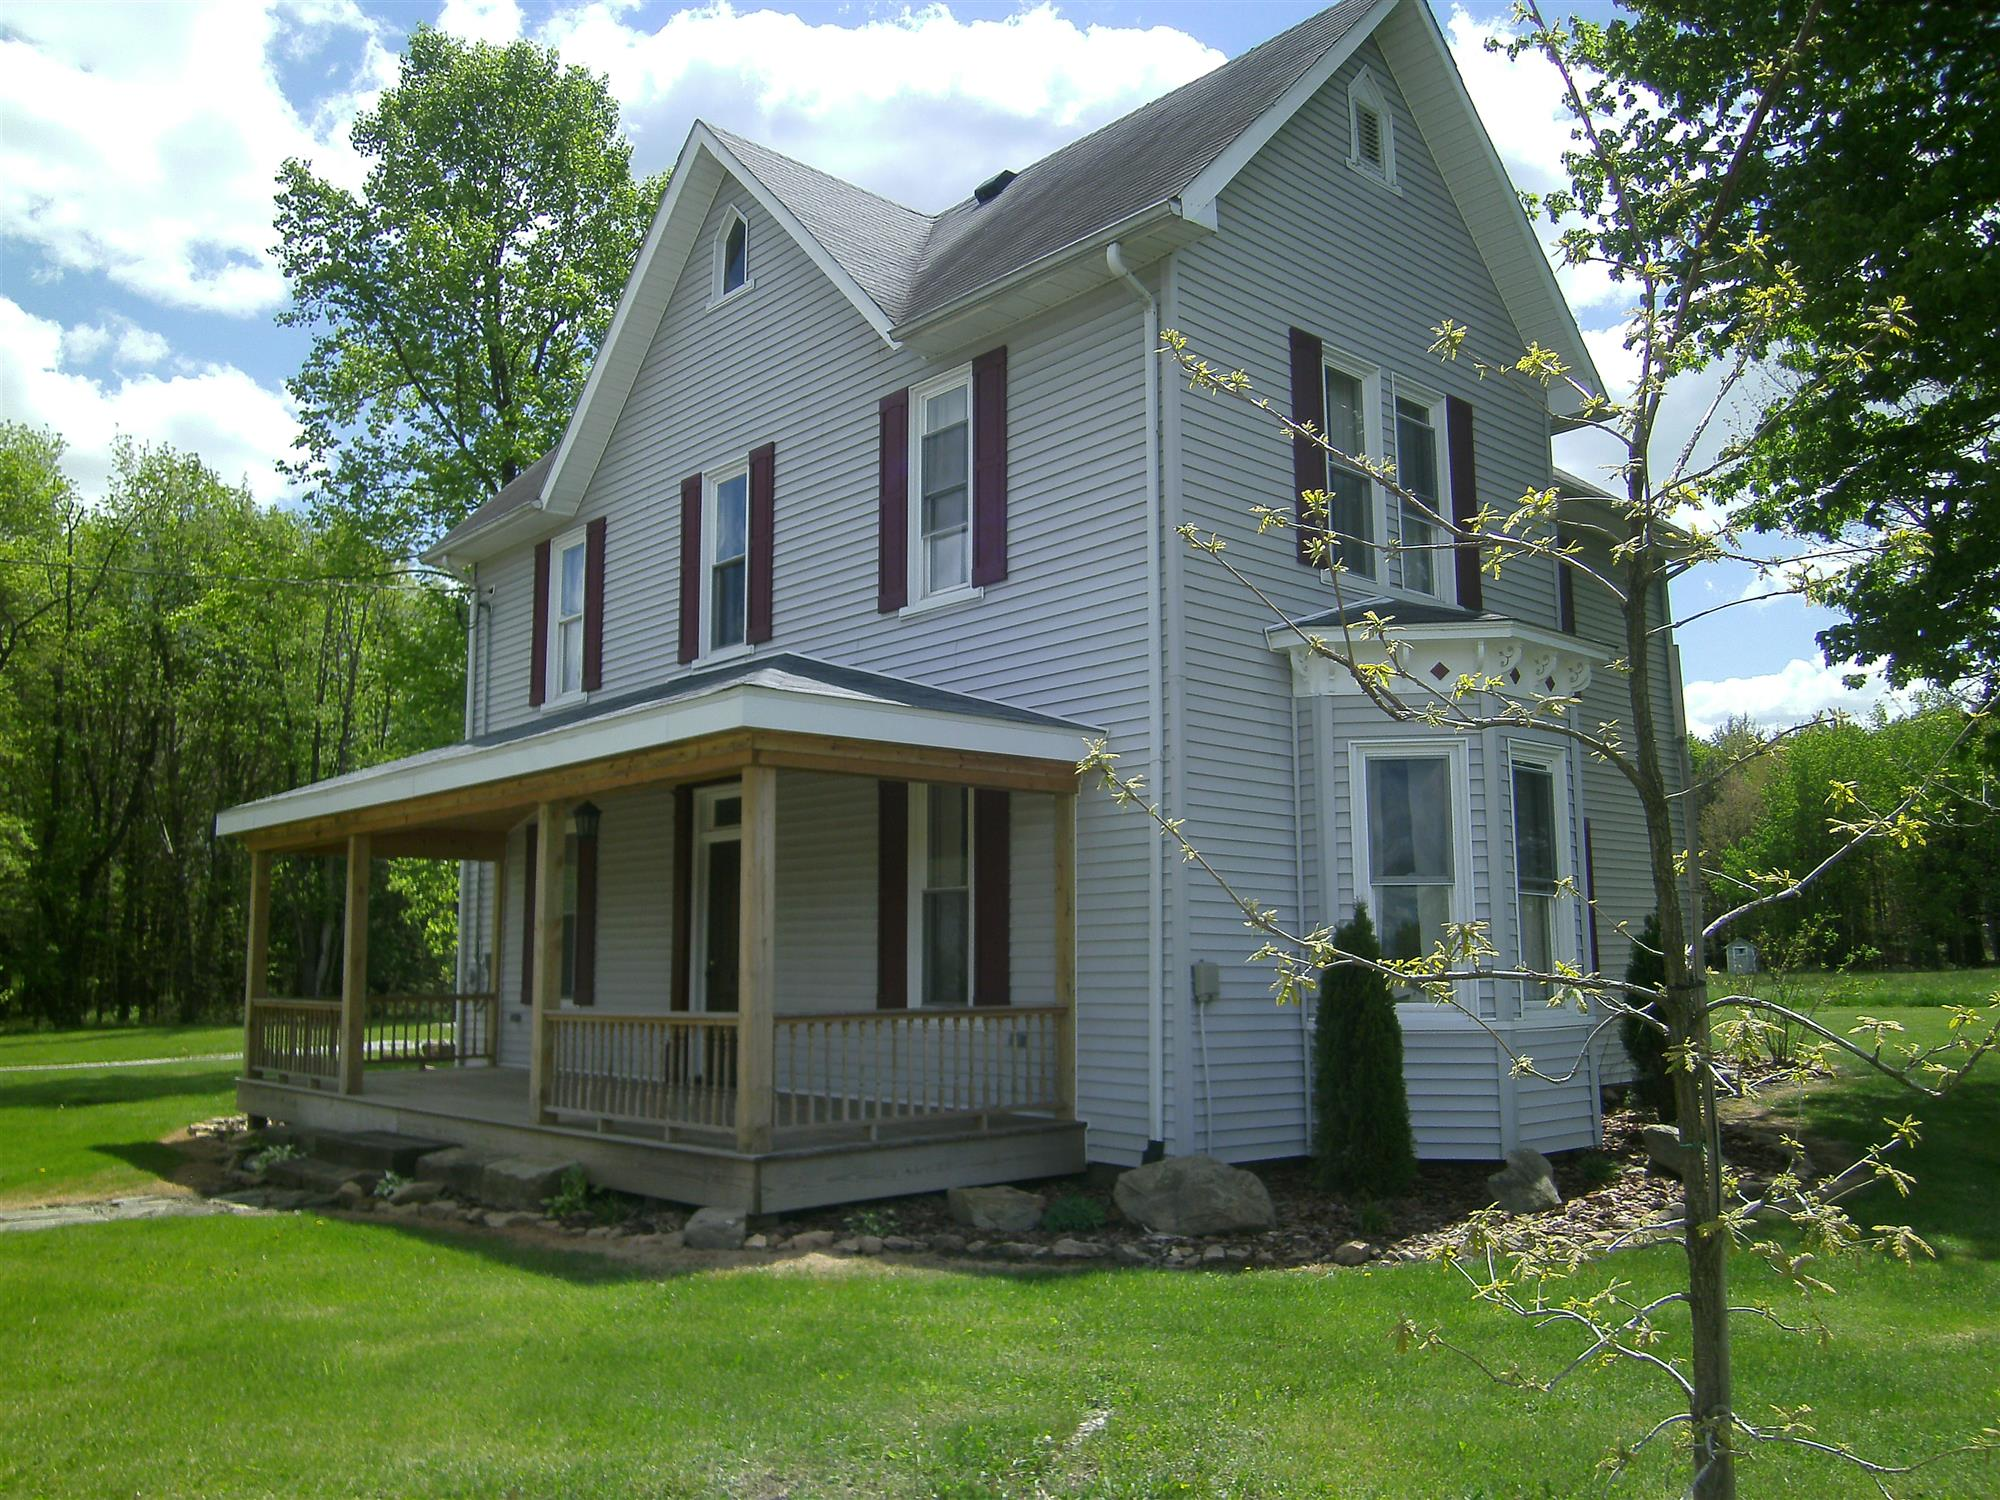 SOLD! -          This is a beautifully restored Victorian farmhouse on 3 acres of land near I-80 and Foxburg in Allegheny ...